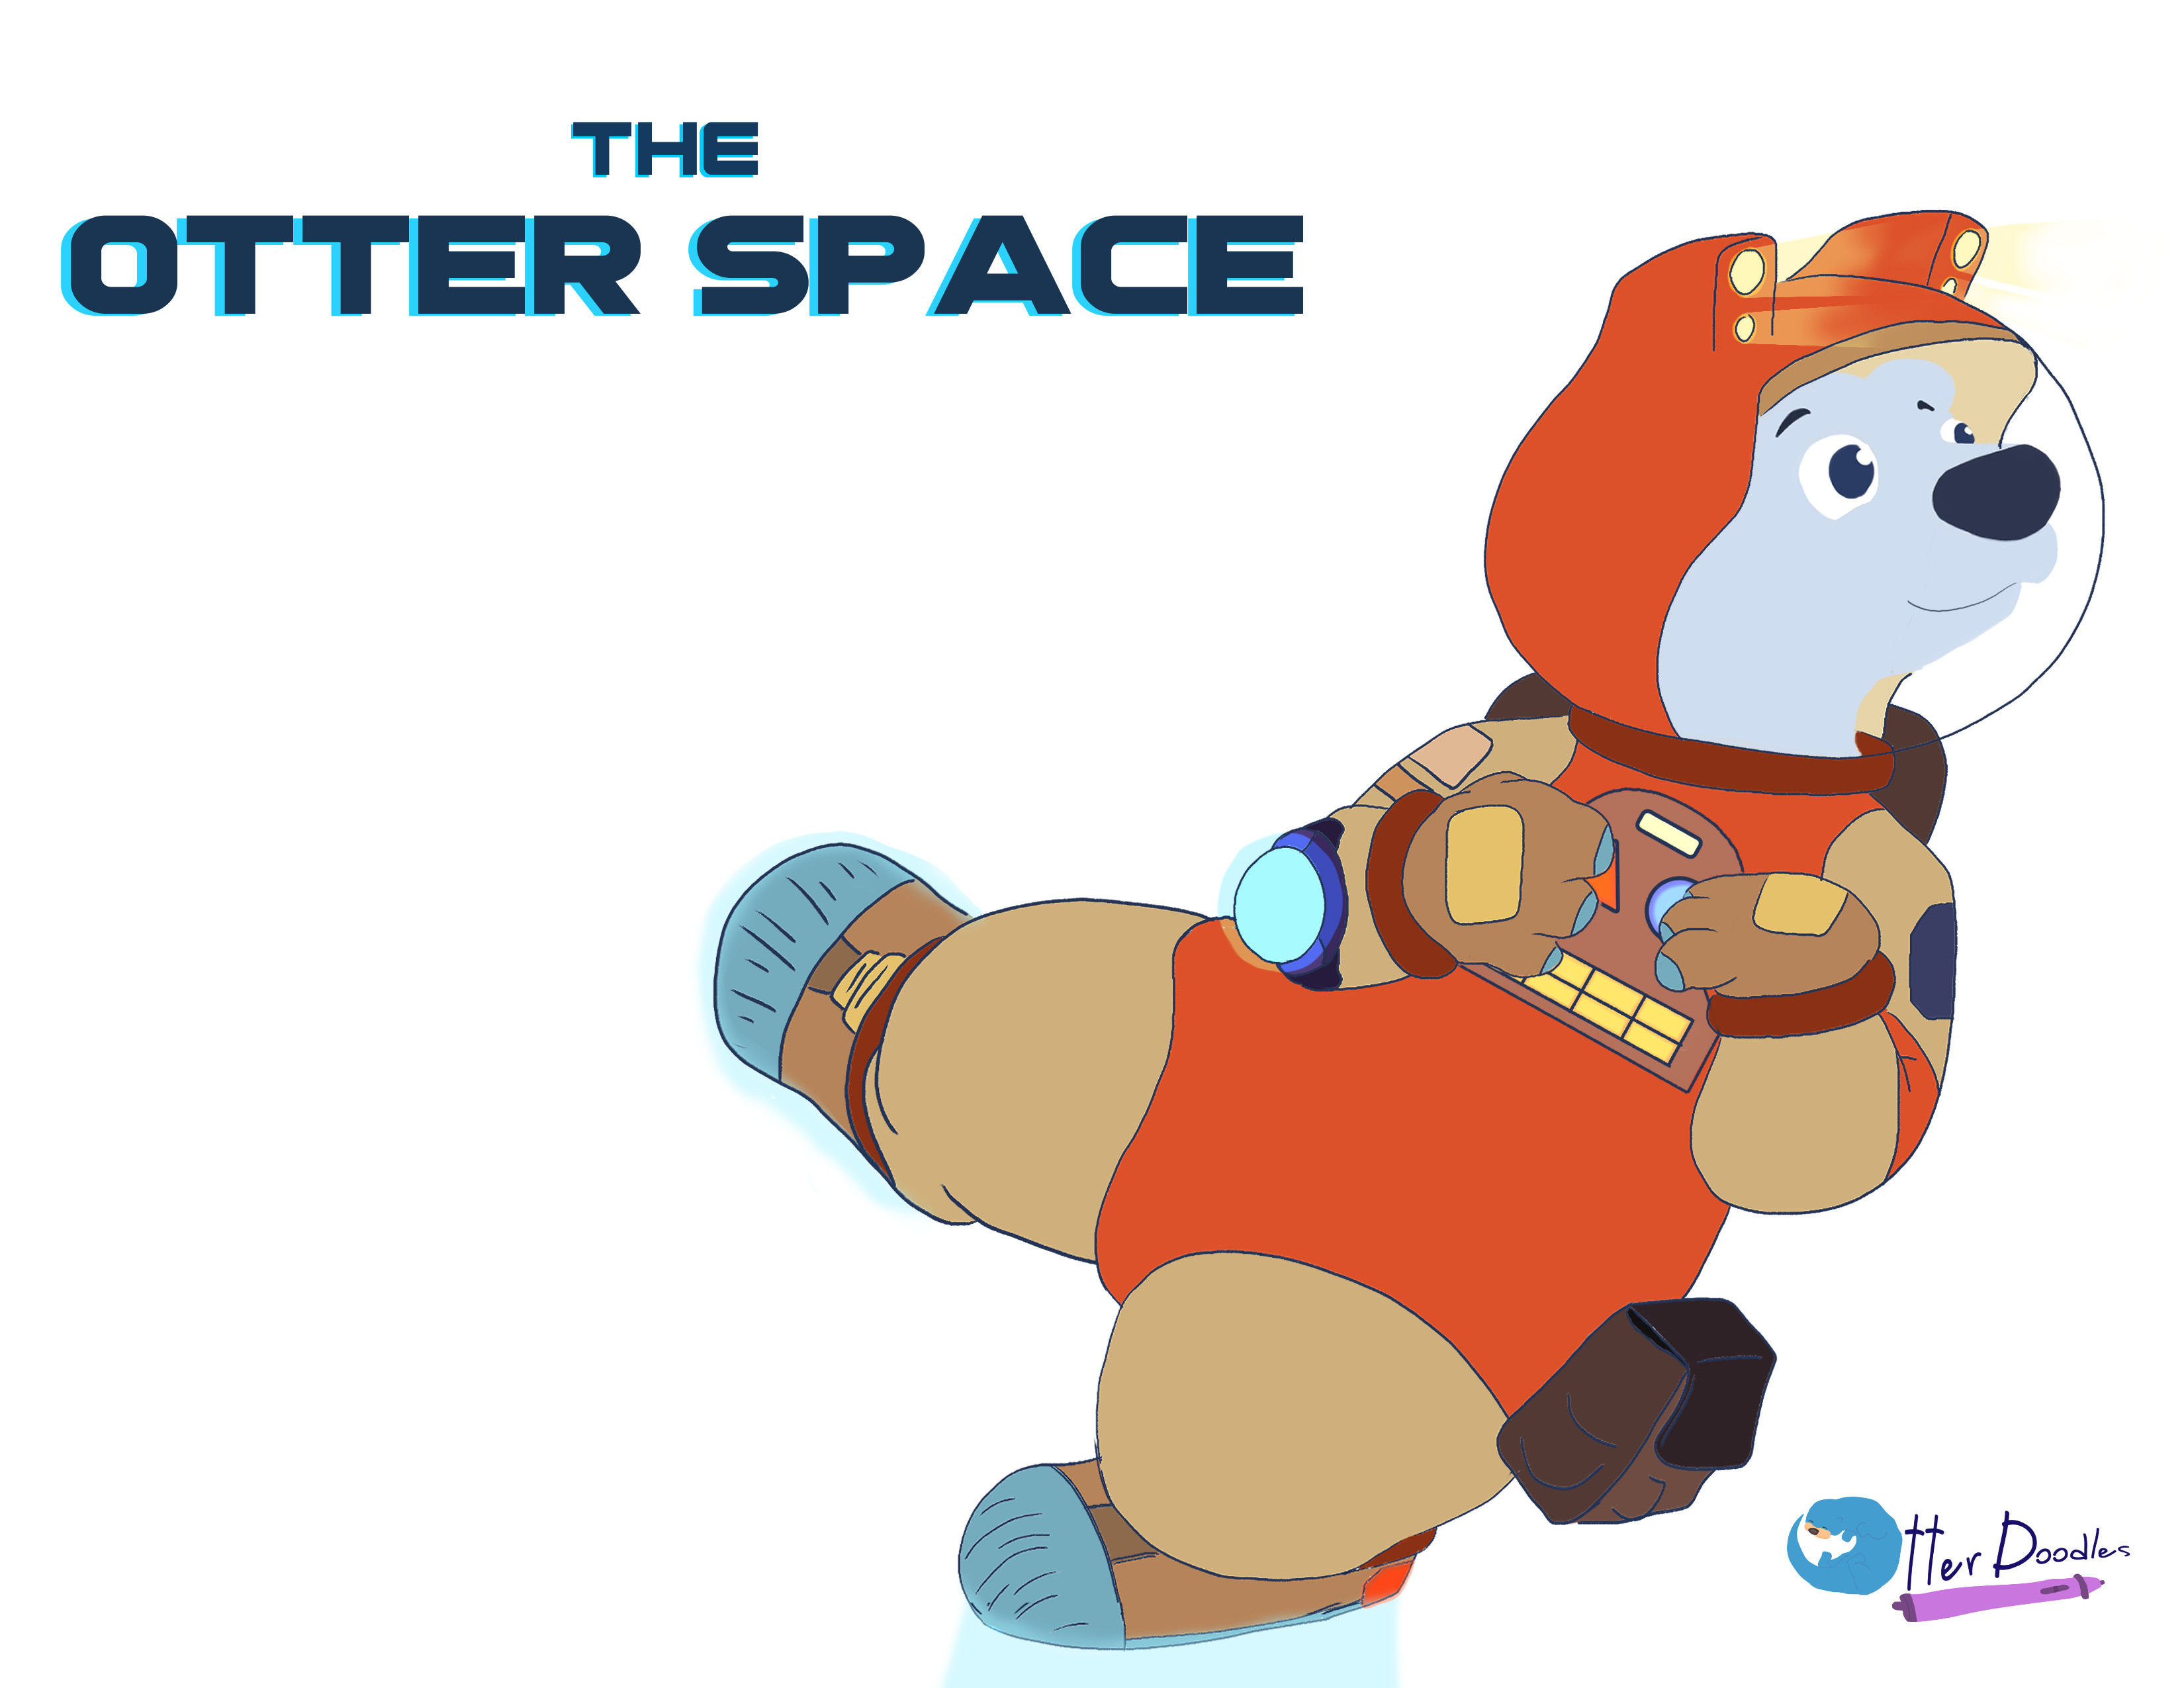 The Otter Space: Character Designs